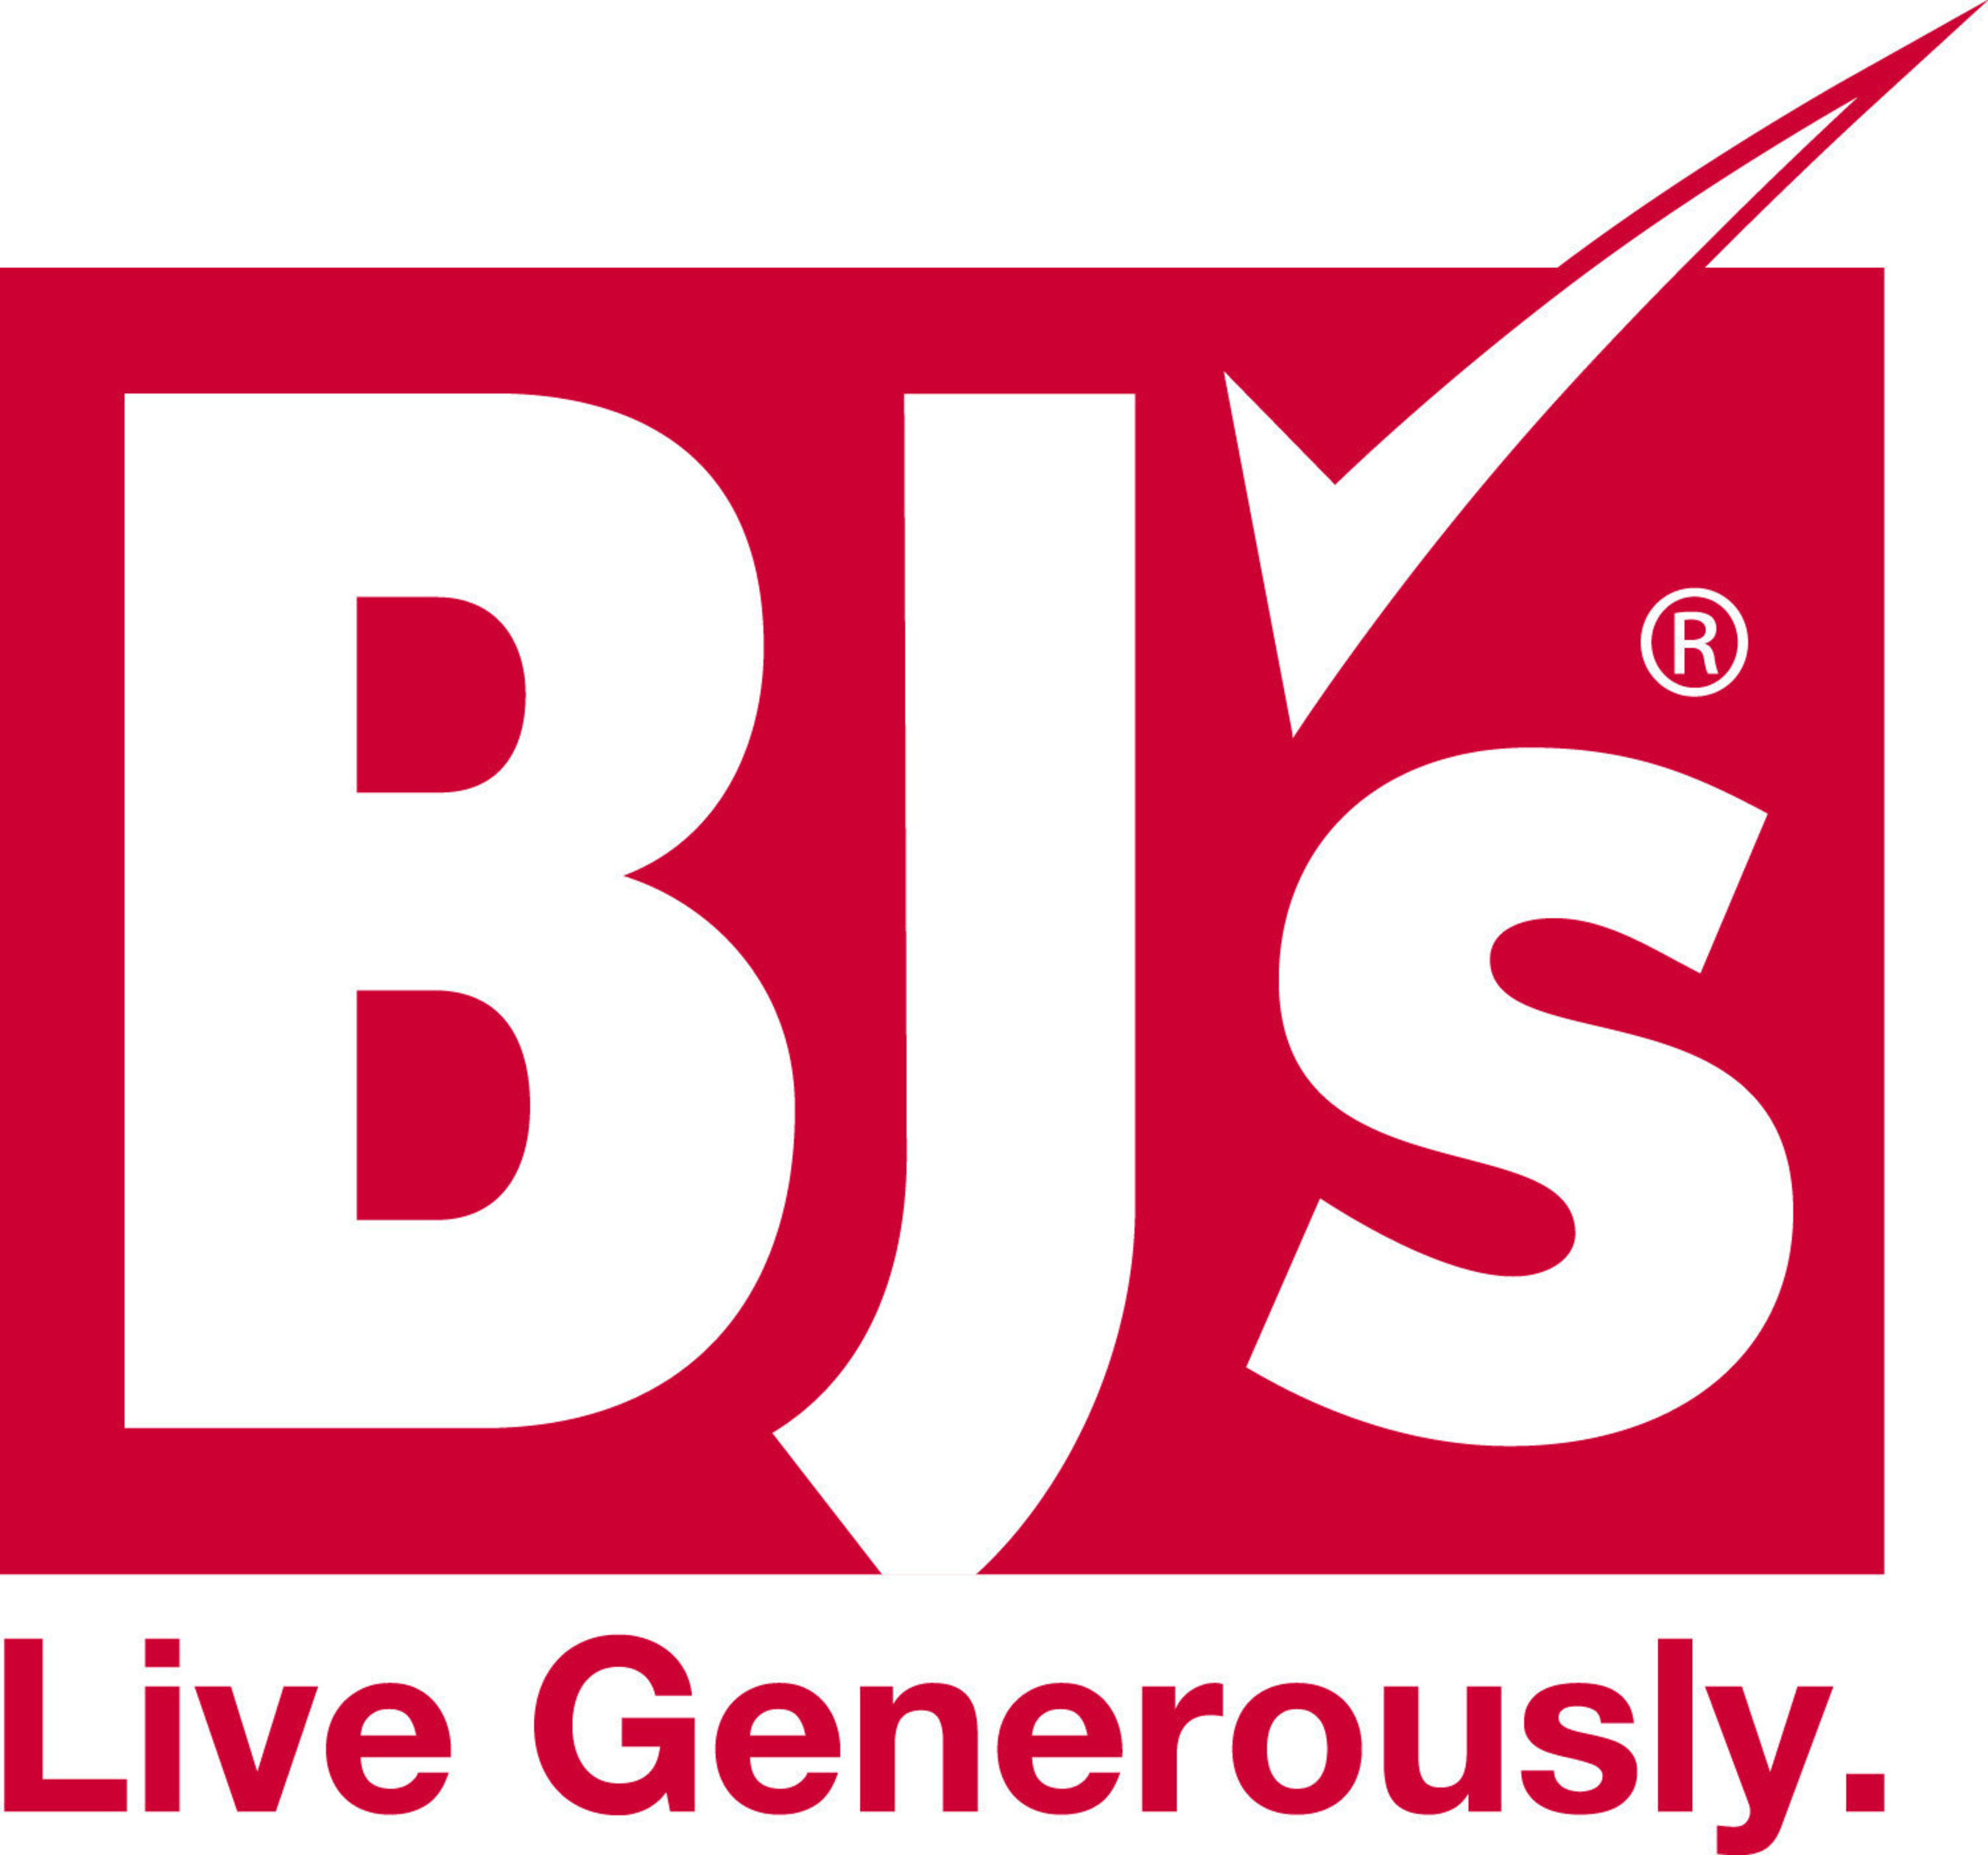 Bj S Announces Membership Offer For Sam S Club Members Doing business as:sams wholesale car's inc sam's wholesale car's, inc. https www prnewswire com news releases bjs announces membership offer for sams club members 300582110 html